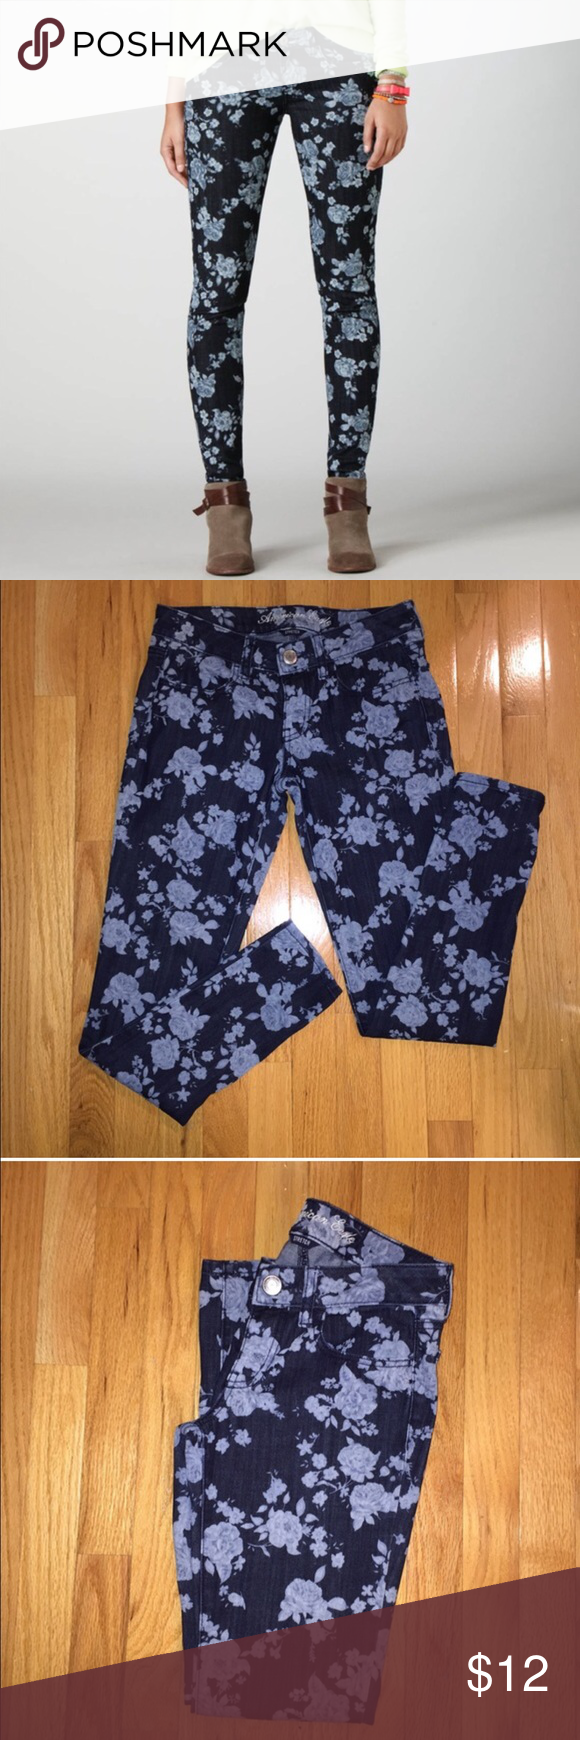 American Eagle Floral Jeans Size 2 blue floral skinny jeans from American Eagle. Ankle length. They do have a little bit of stretch to them. Great condition, no stains or holes! American Eagle Outfitters Jeans Ankle & Cropped